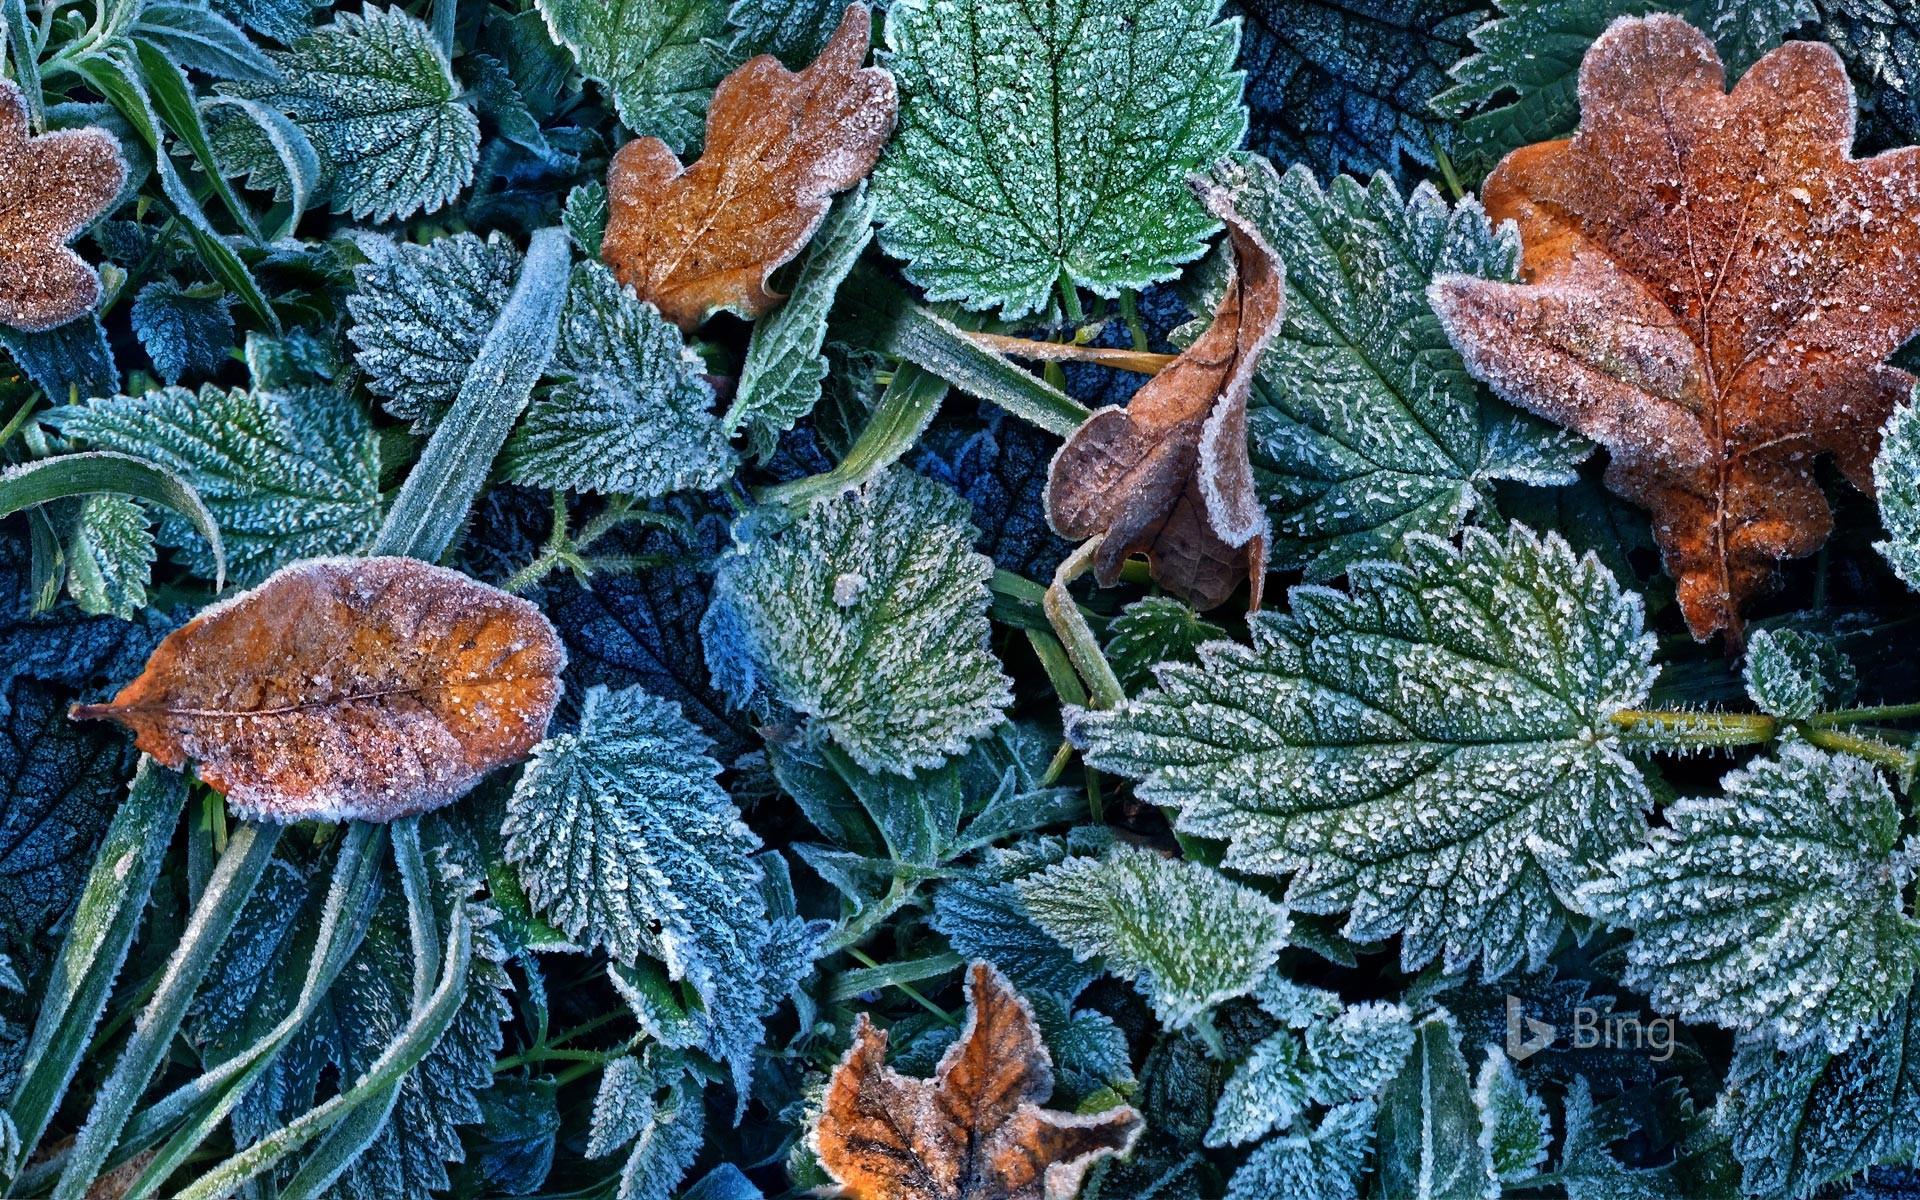 Leaves with hoarfrost in the Black Forest, Freiburg, Baden-Württemberg, Germany